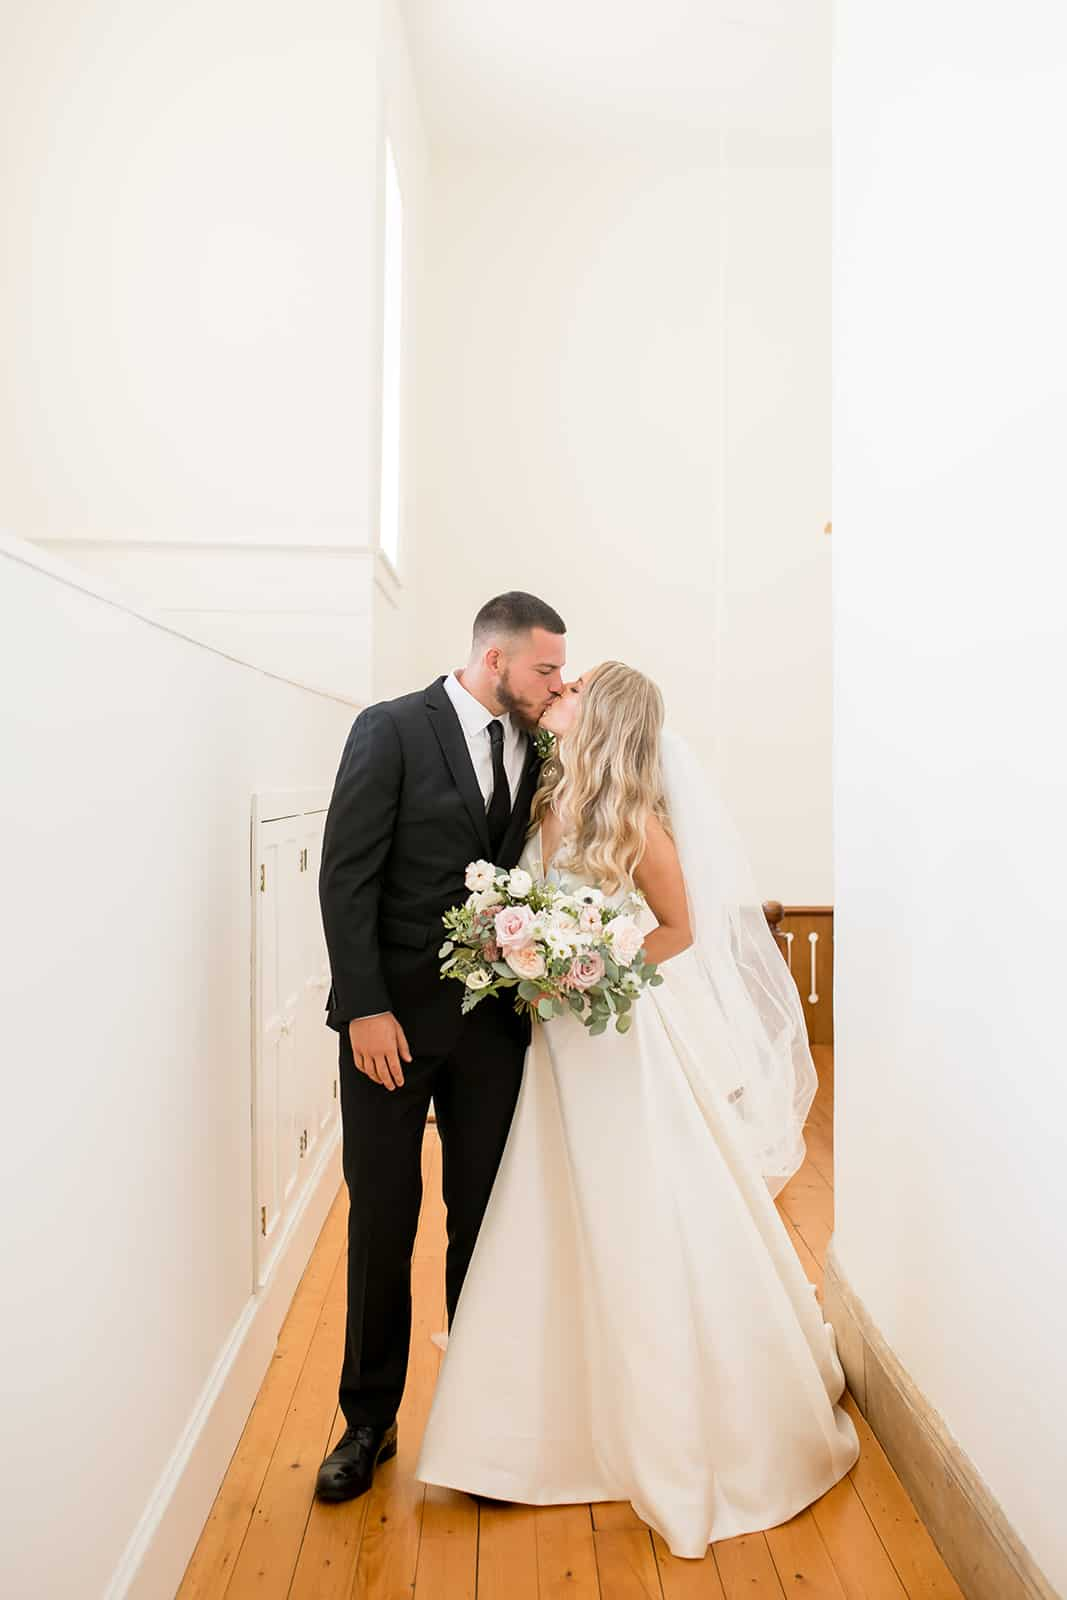 Sharing my favorite photos from our August 8th wedding ceremony that took place in South Acworth, New Hampshire!